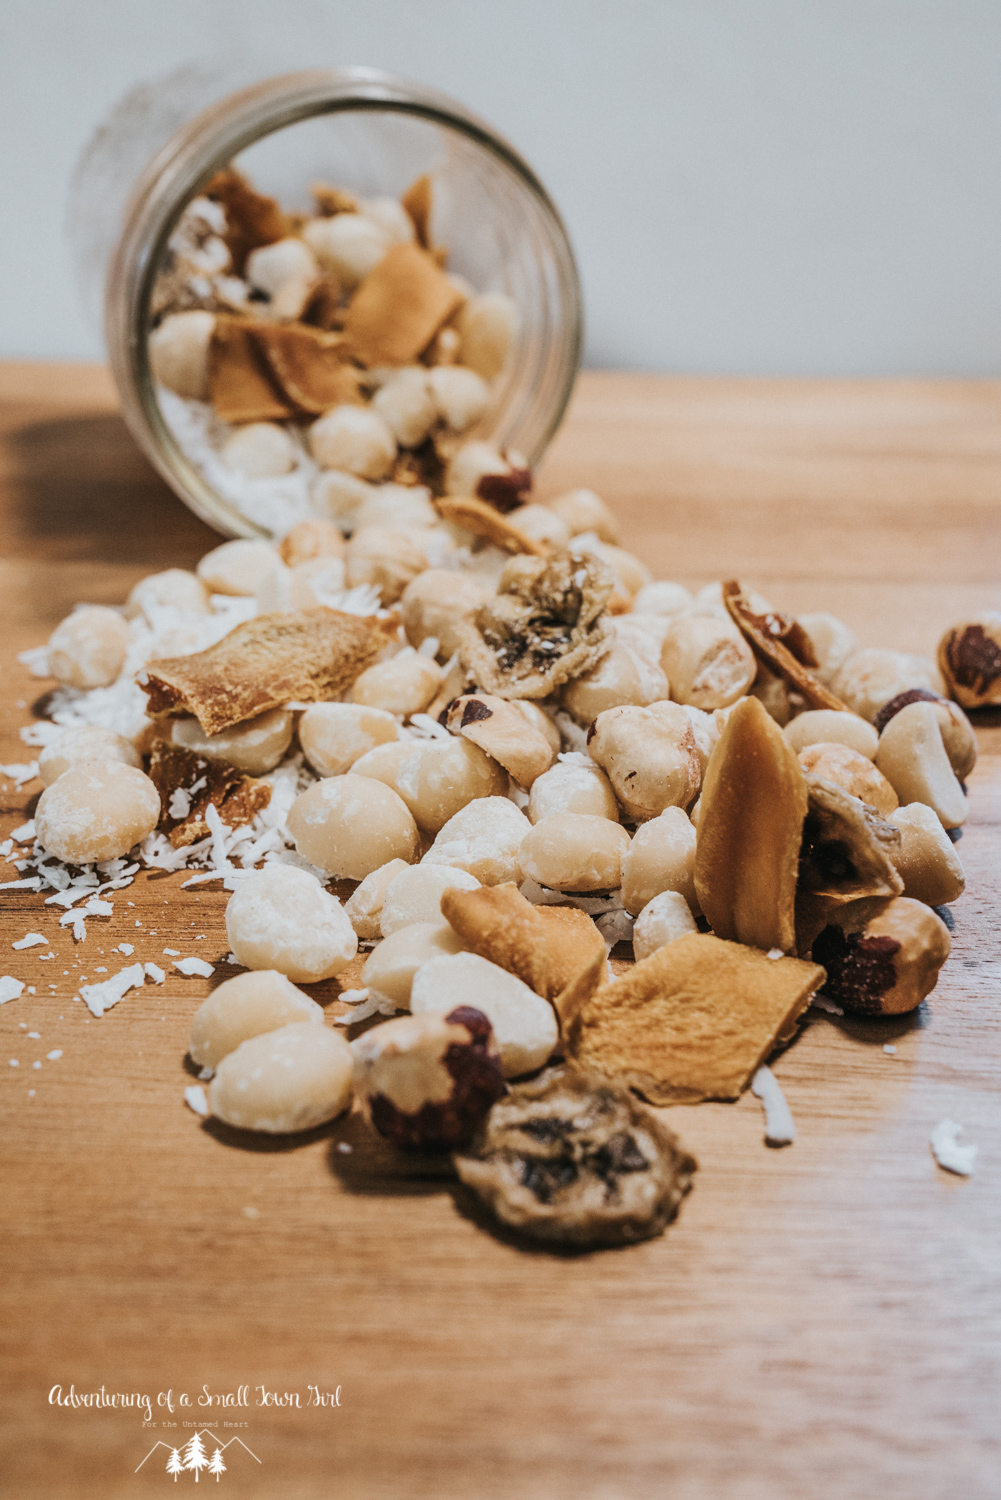 Homemade Trail Mix Recipe by Adventuring of a Small Town Girl (ASTG) - No Bake Raw Vegan Trail Mix - Make your own trail mix